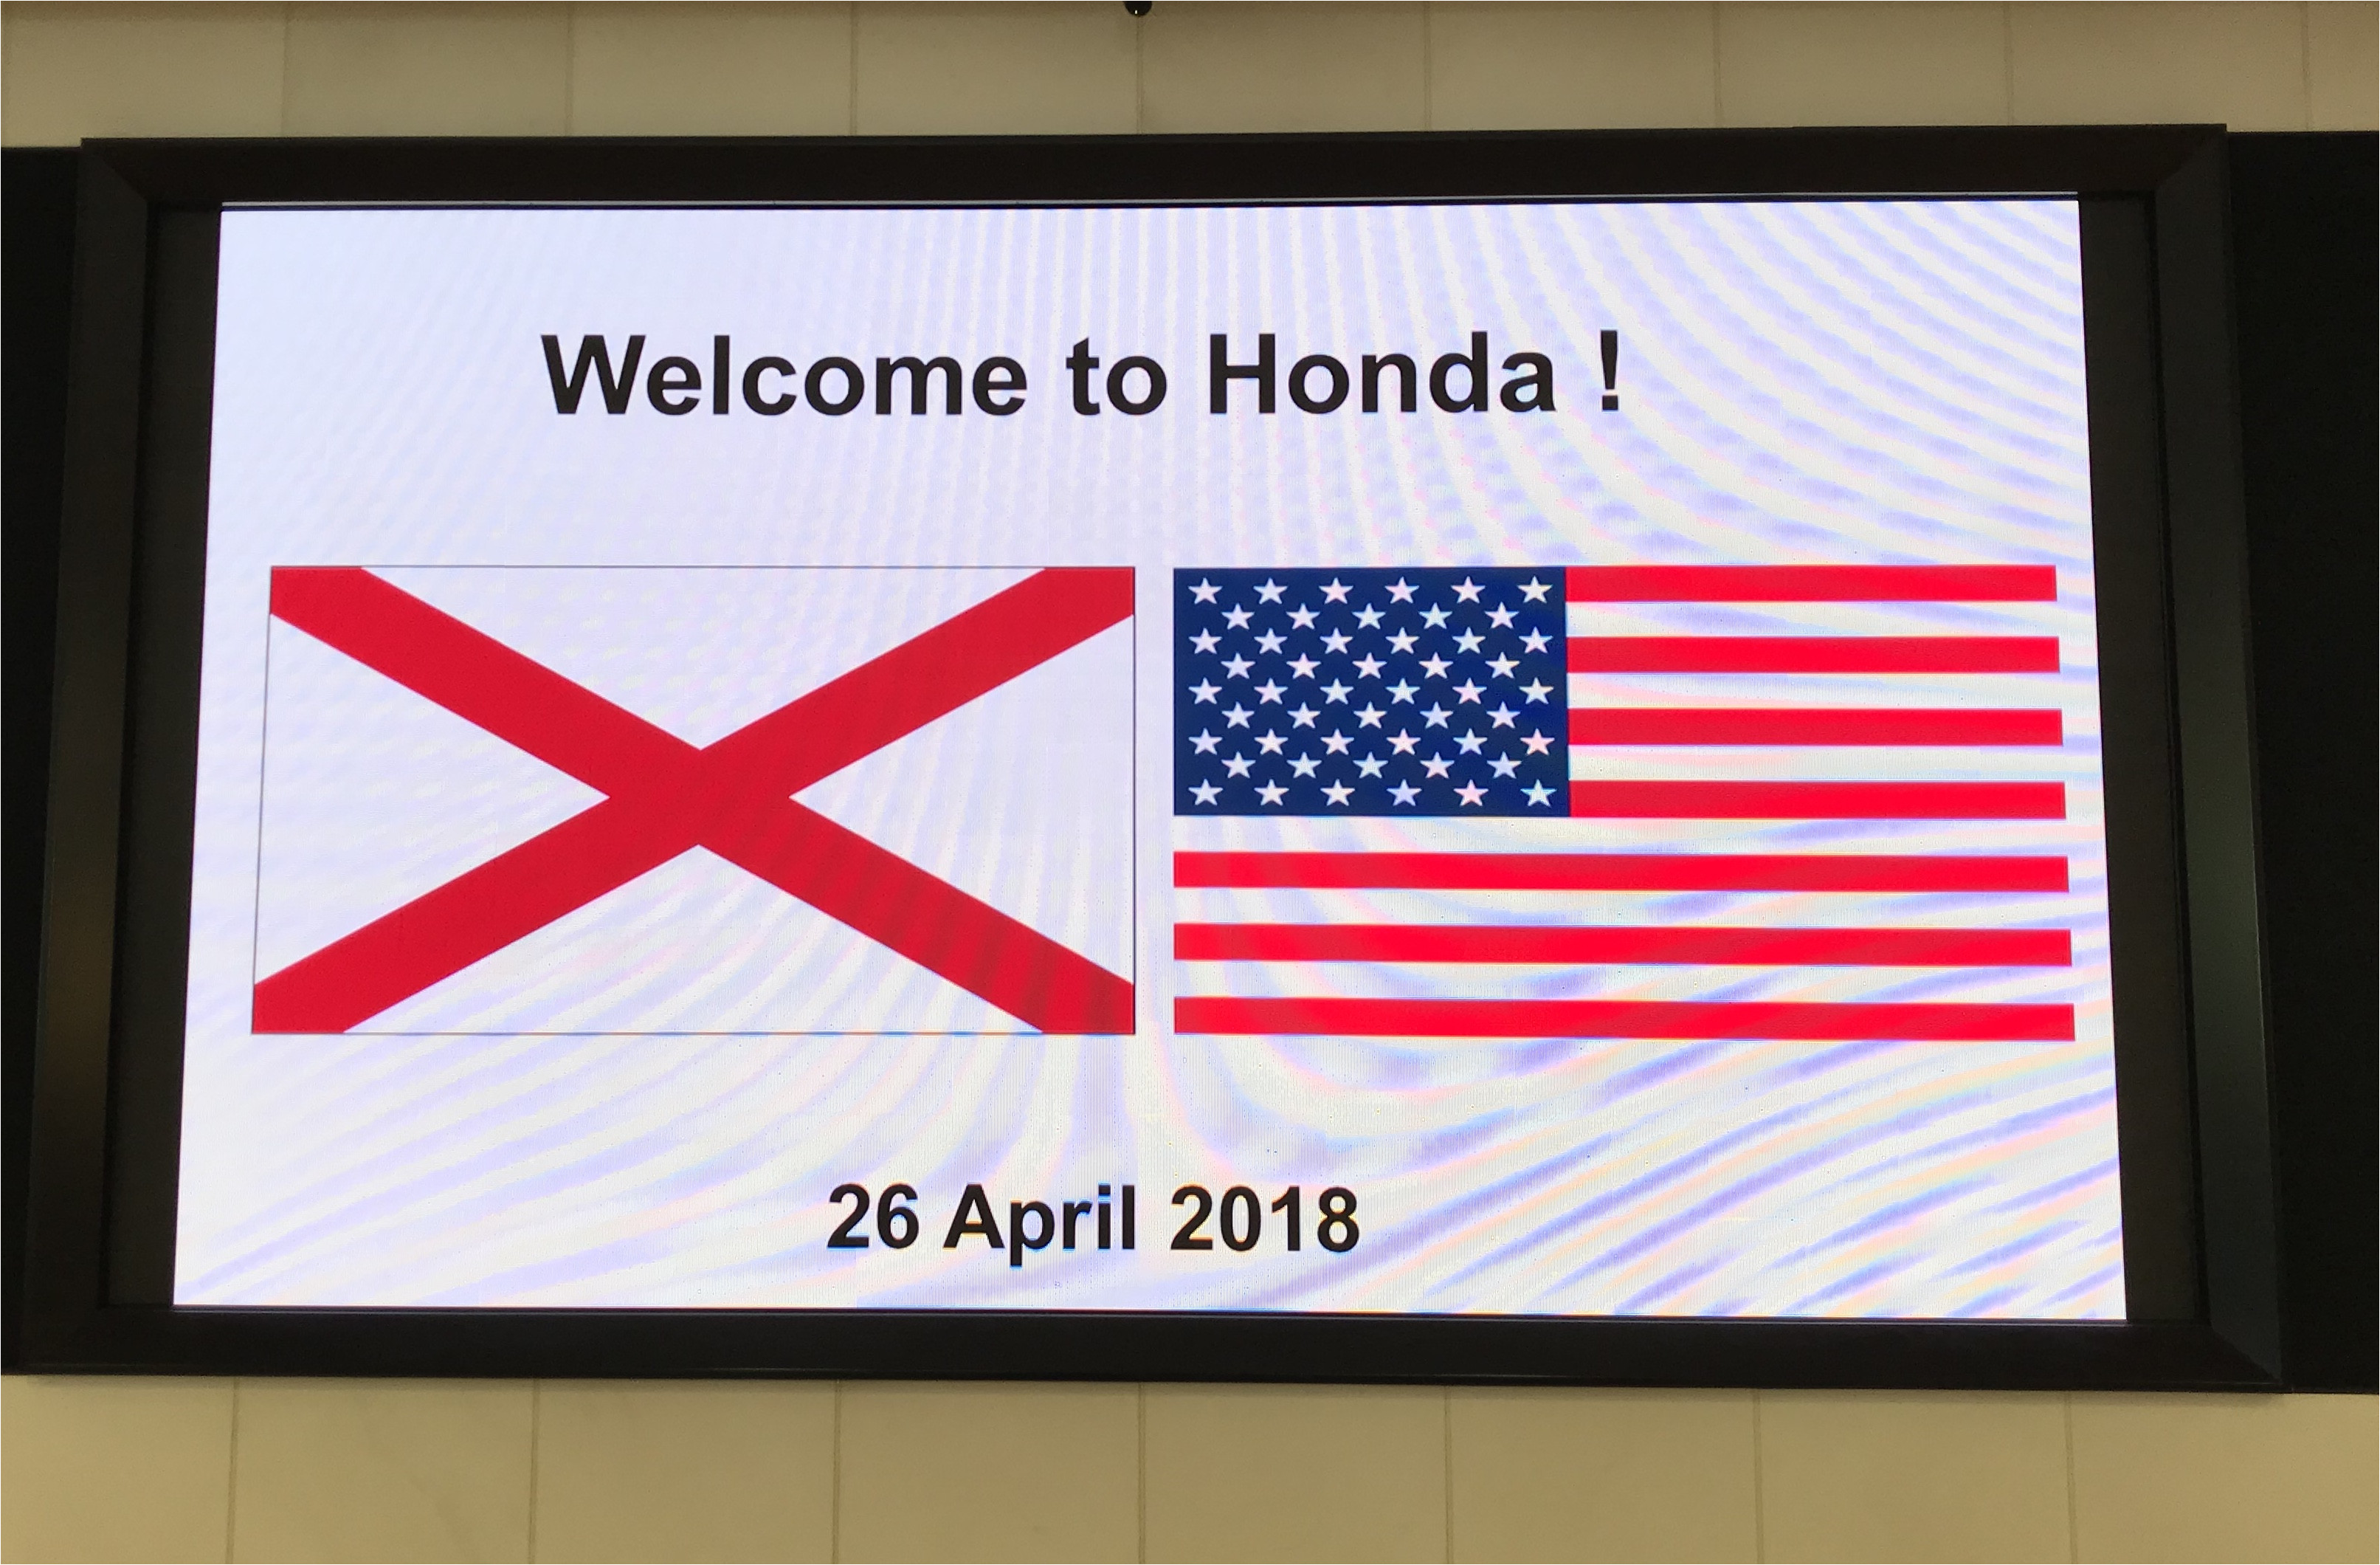 honda greets the alabama team with the alabama and u s flags